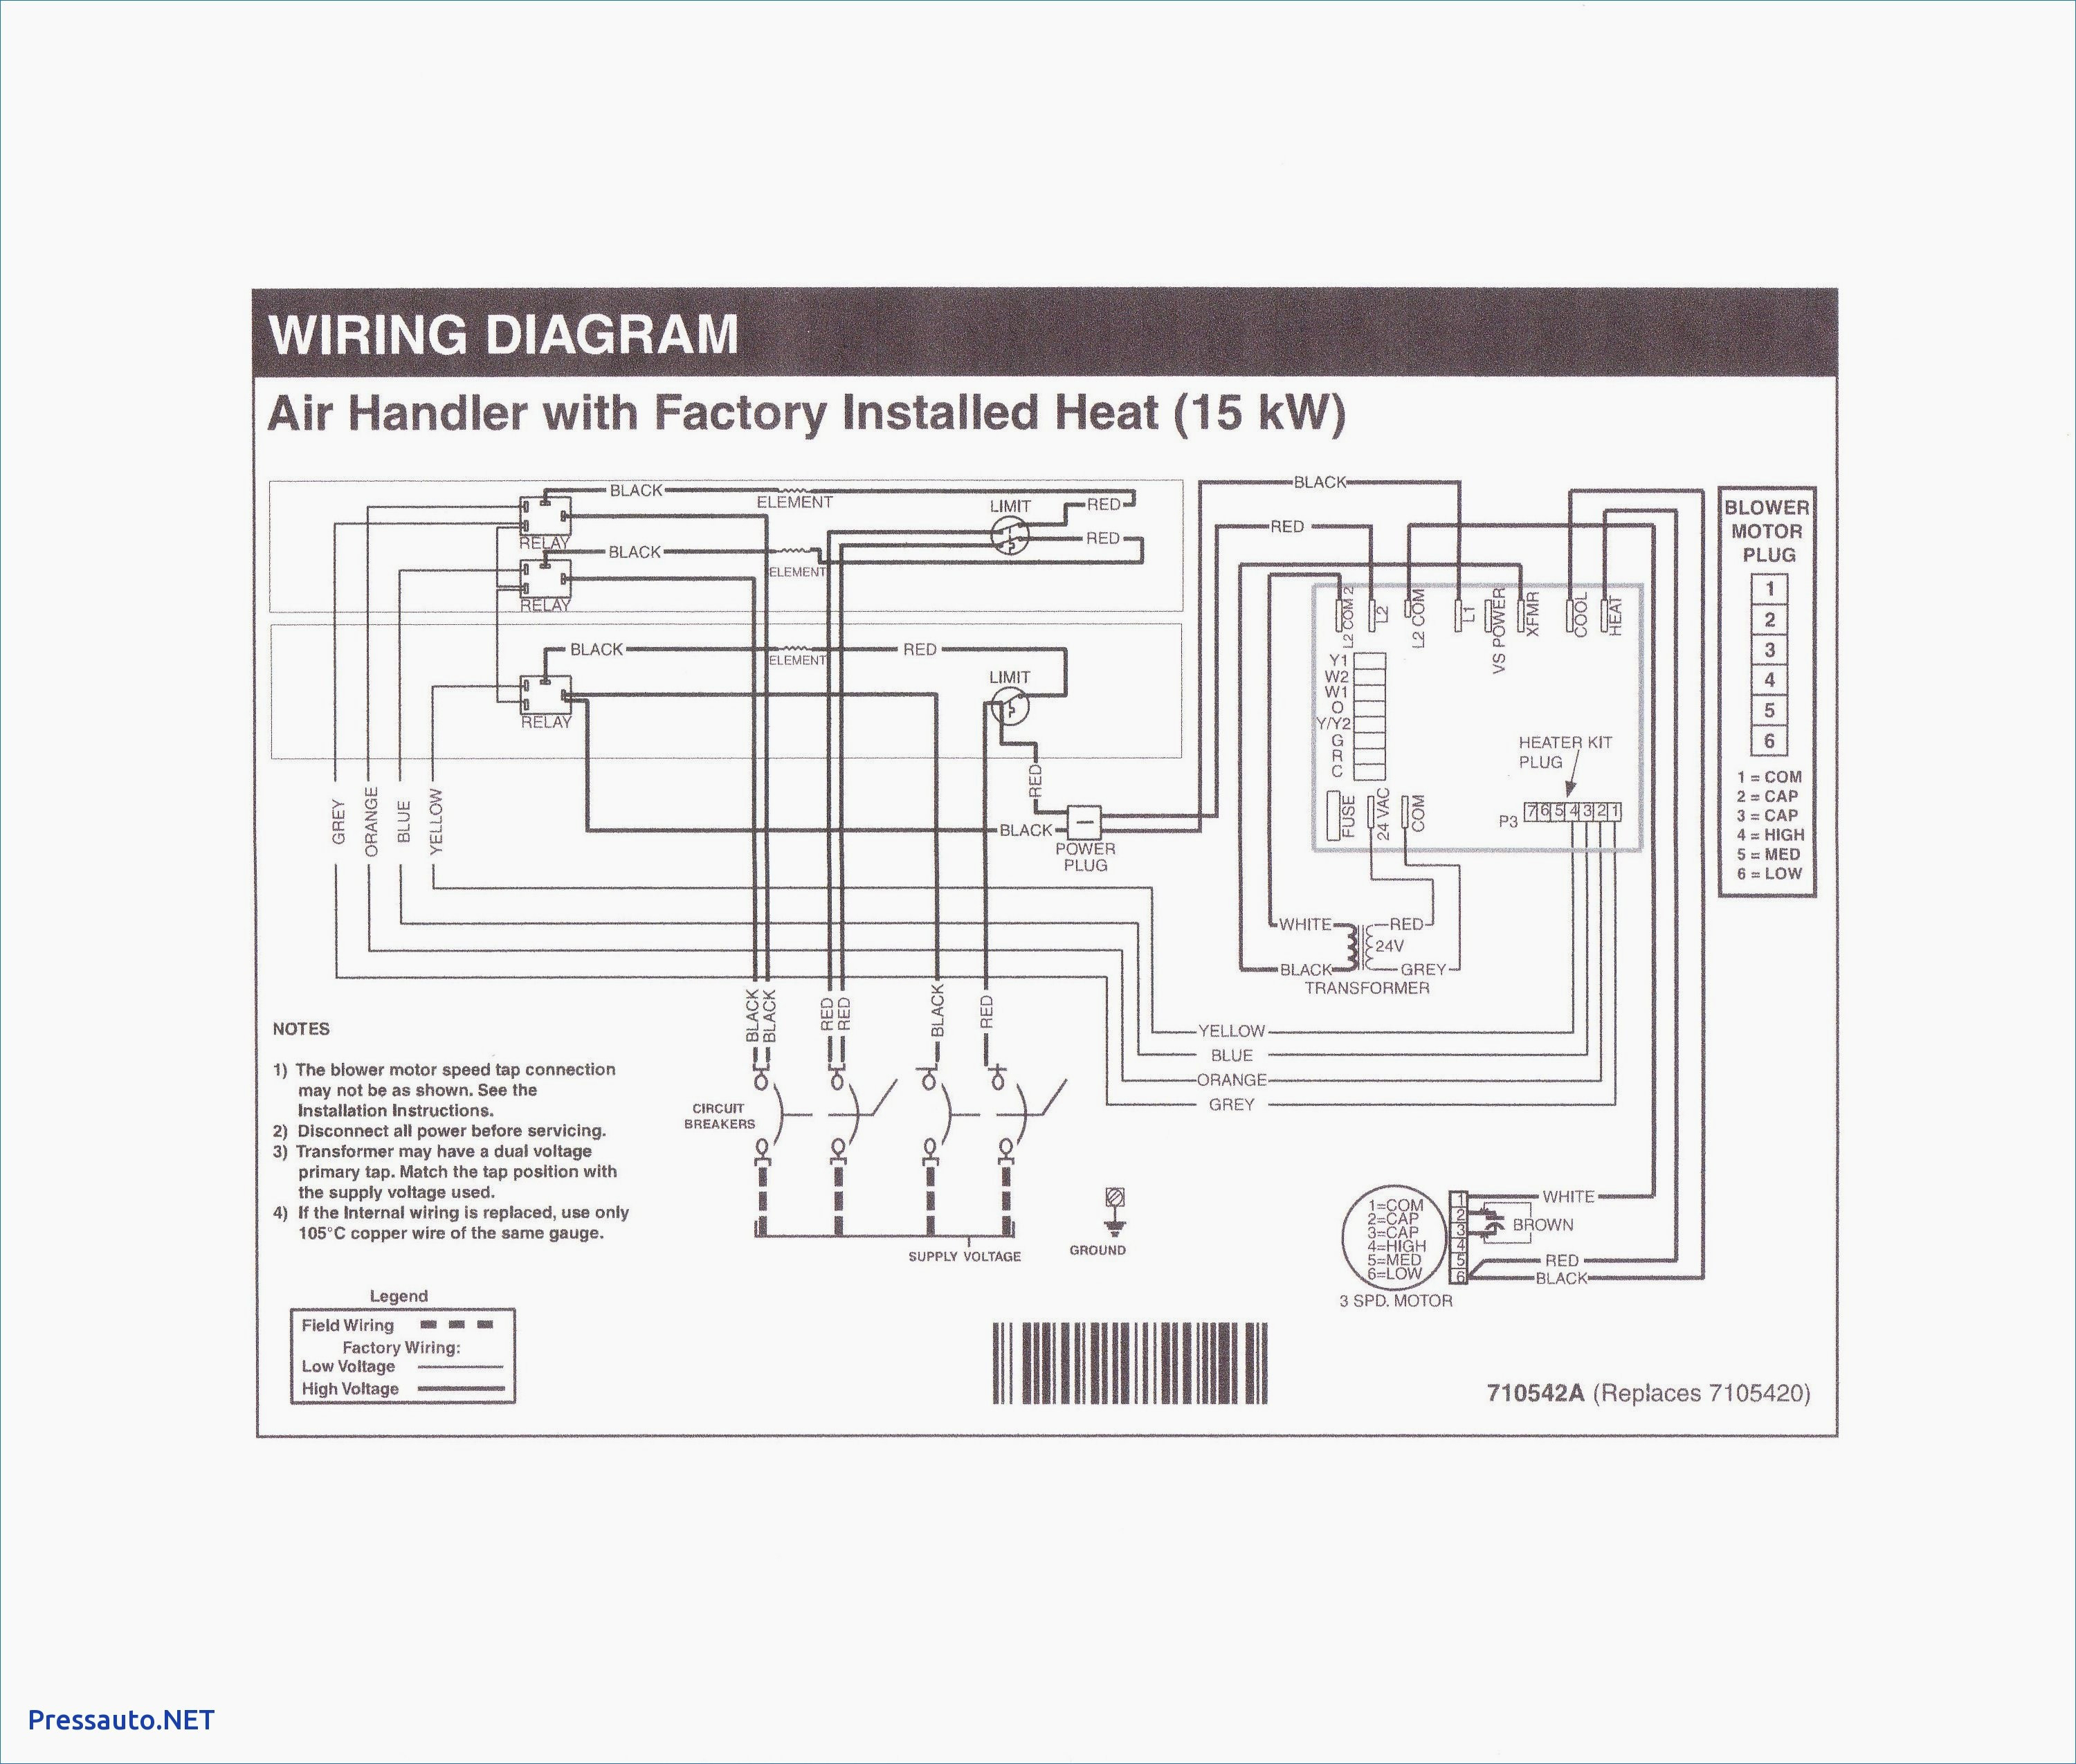 Furnace Wiring Diagram For Blower Motor